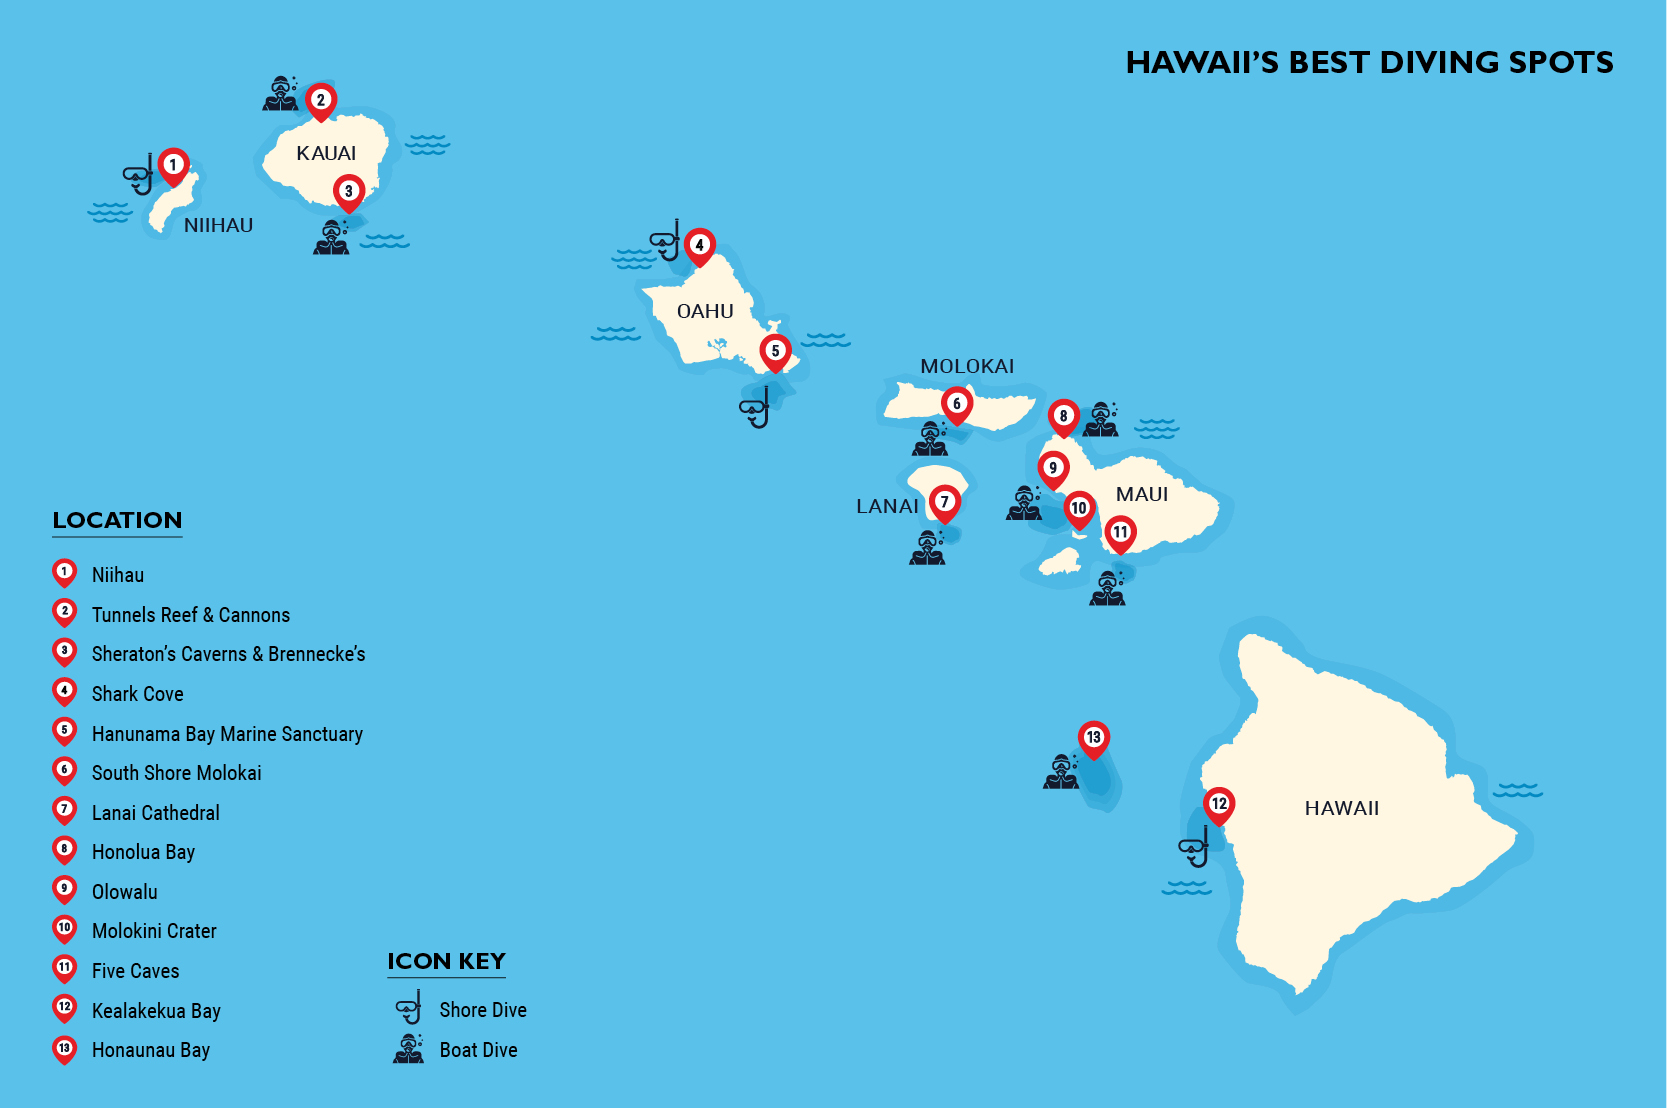 Map of Hawaii best diving locations